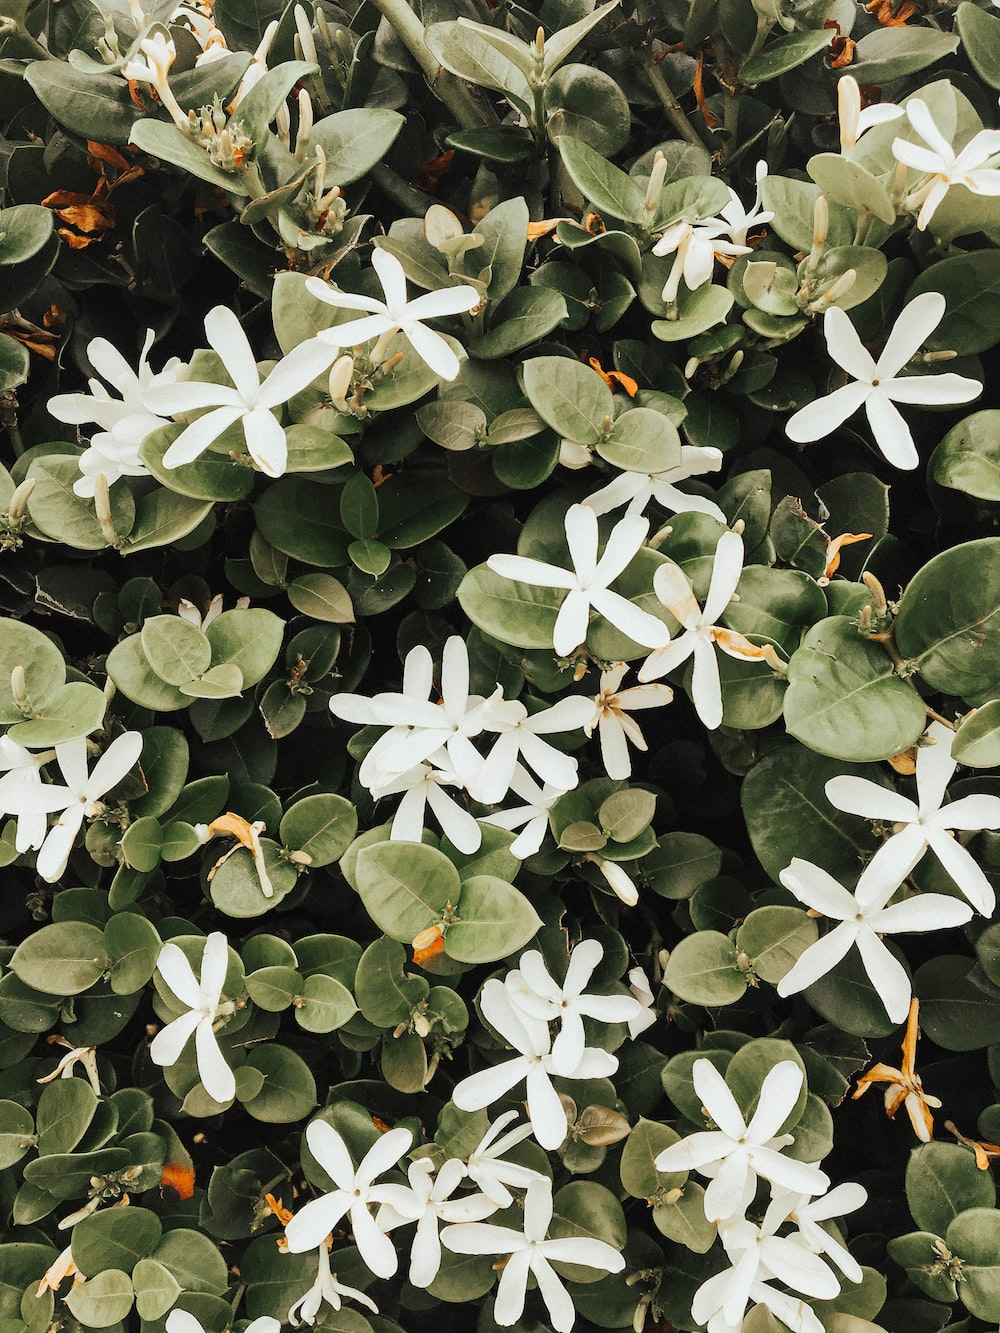 Leafe White Flower Plant And Nature Hd Photo By Abbie Bernet